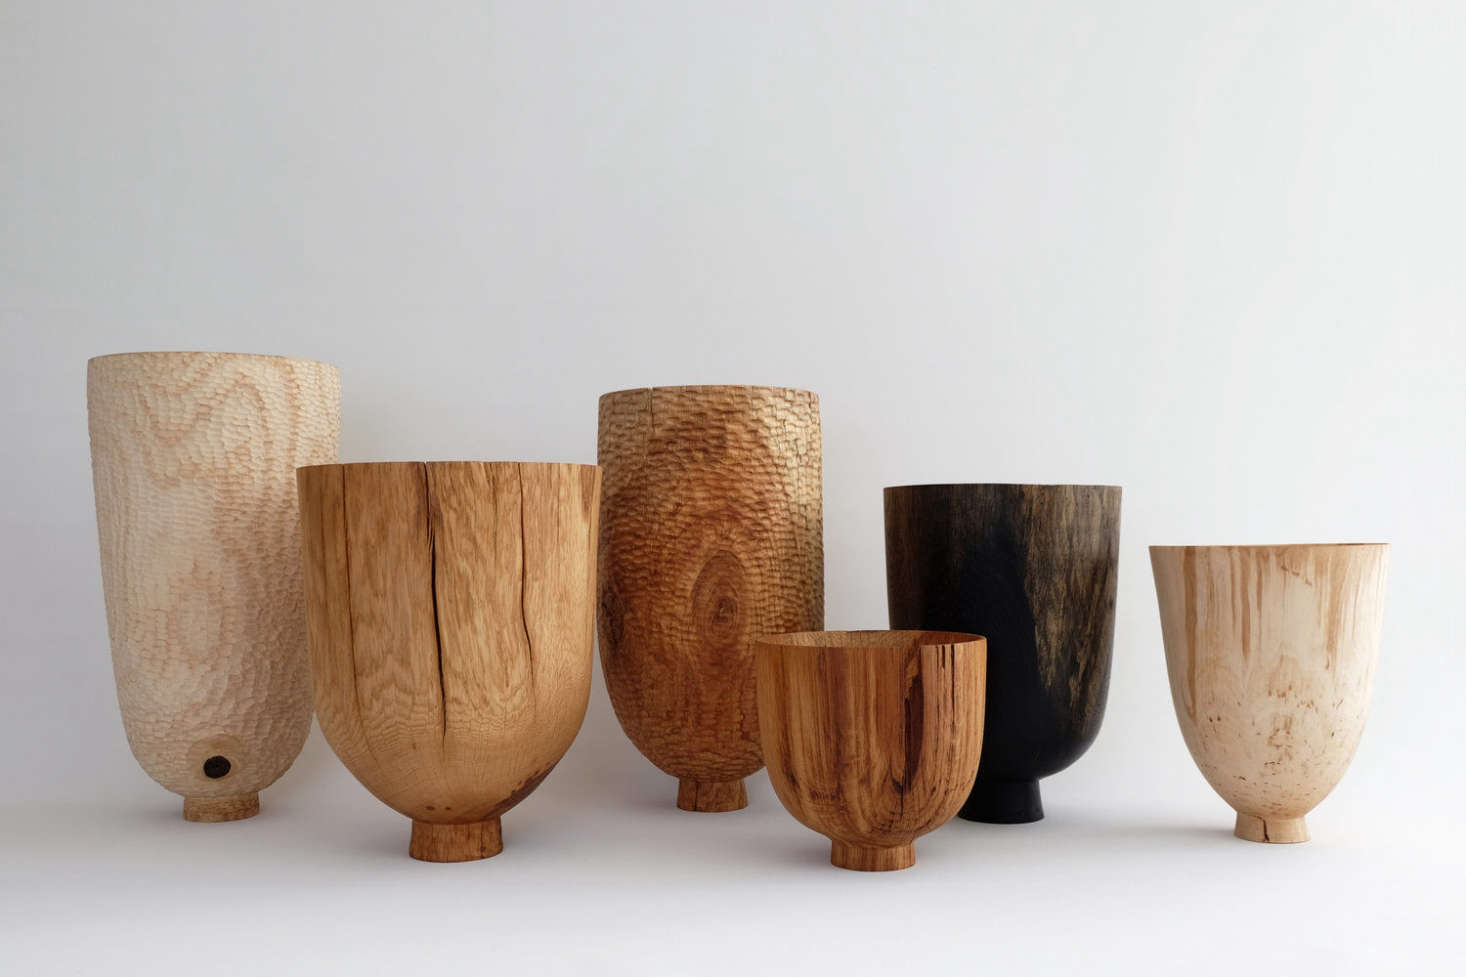 Wooden bowls by London-based Forest & Found; seeSecond Life: Tabletop Essentials Made from Salvaged British Hardwoods for more information and ordering.